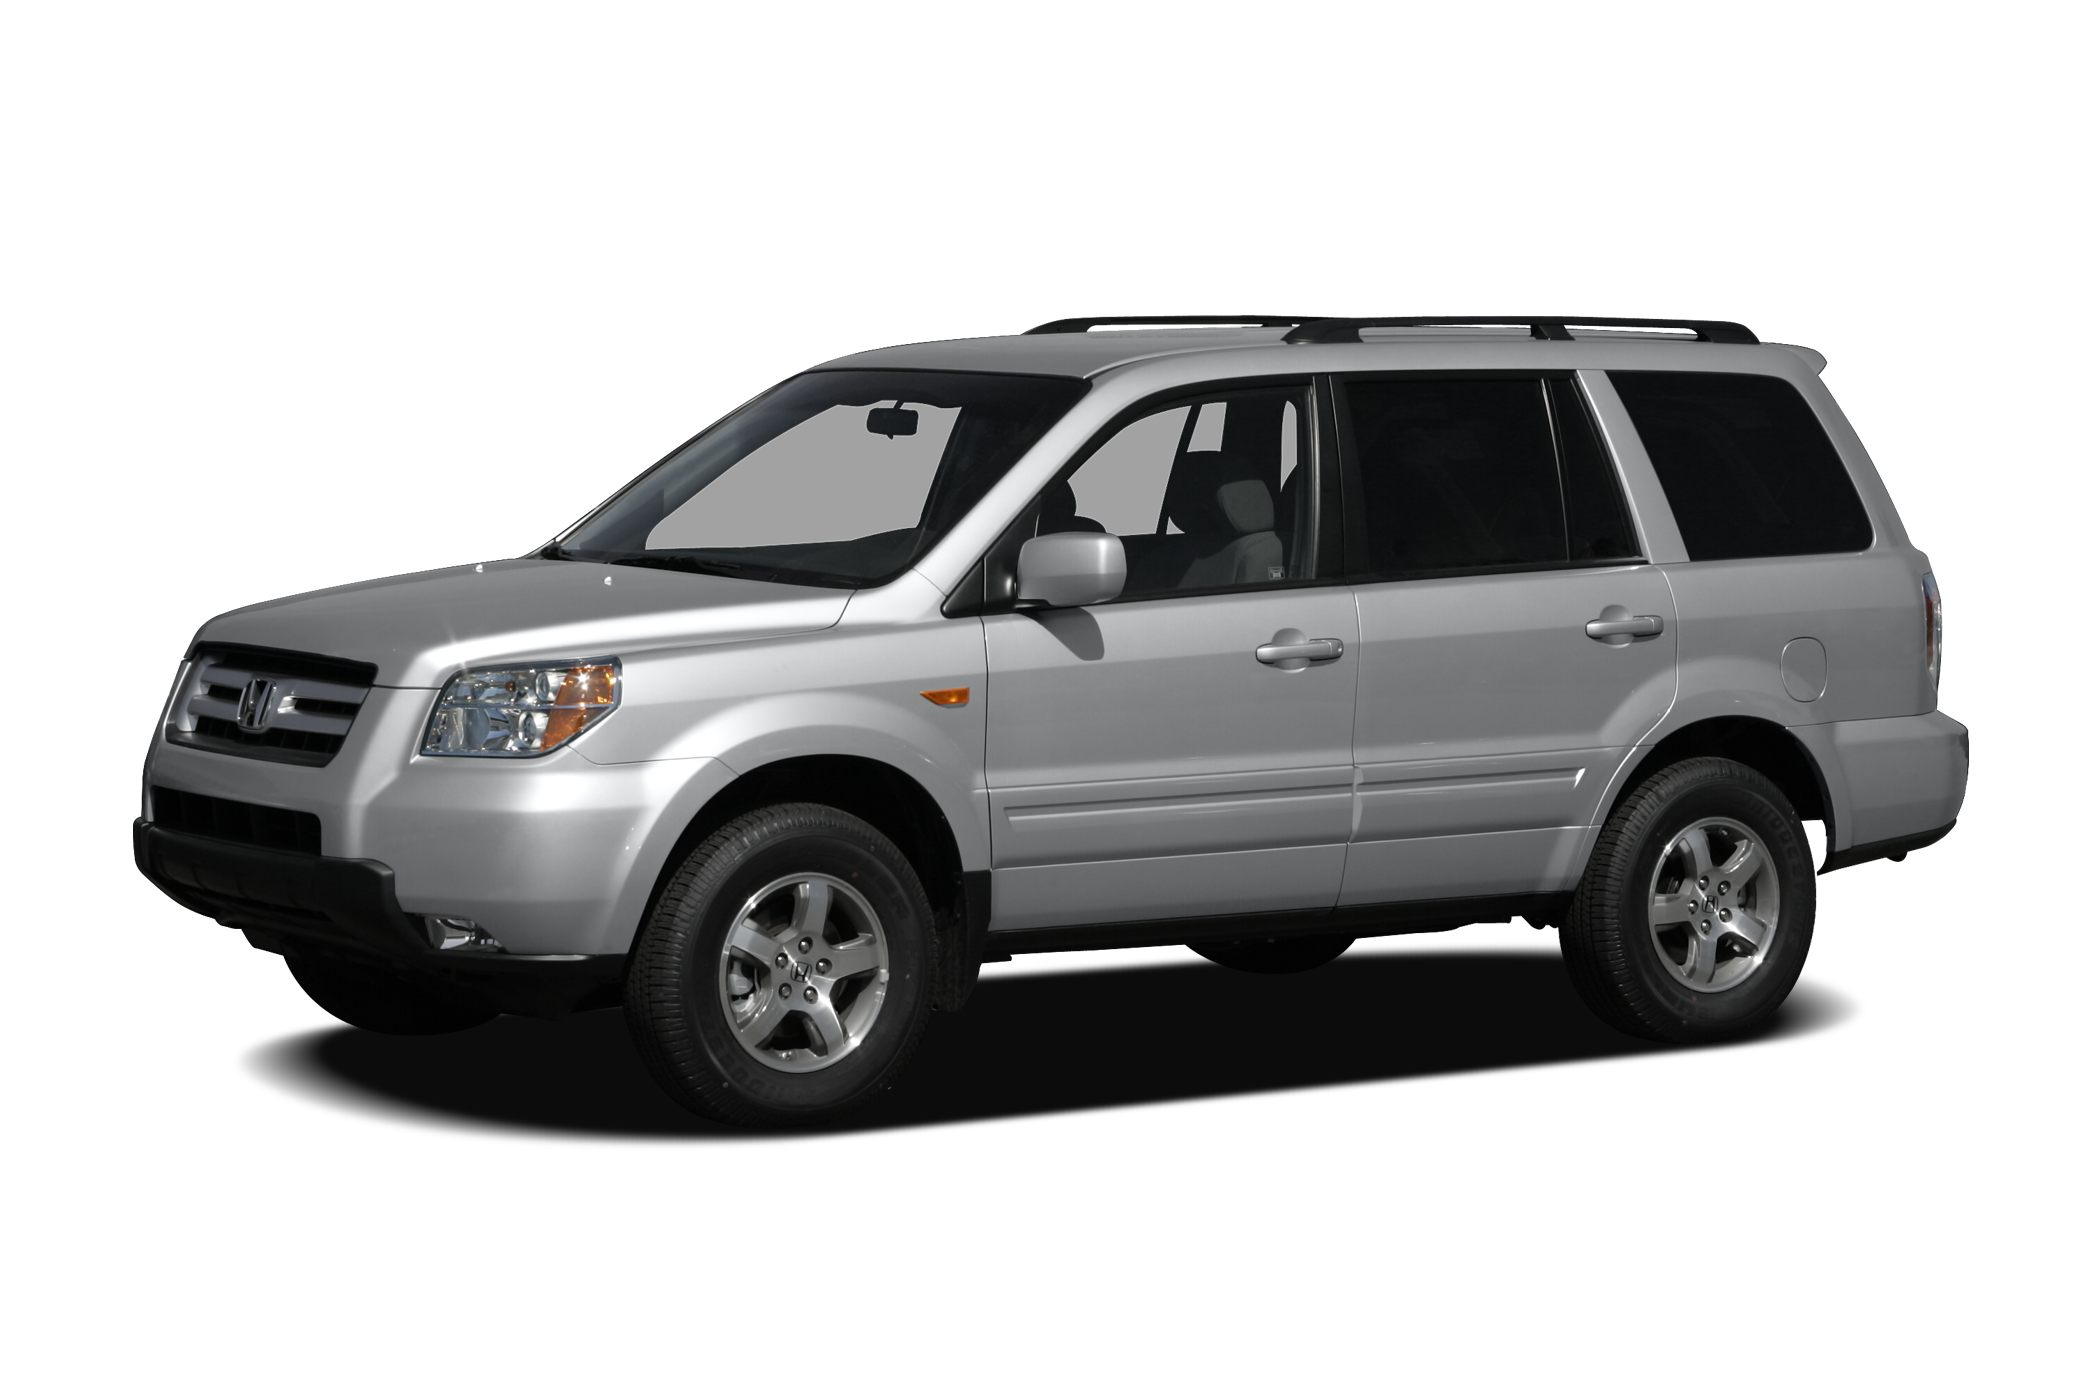 2008 Honda Pilot EX-L SUV for sale in Newark for $15,000 with 93,166 miles